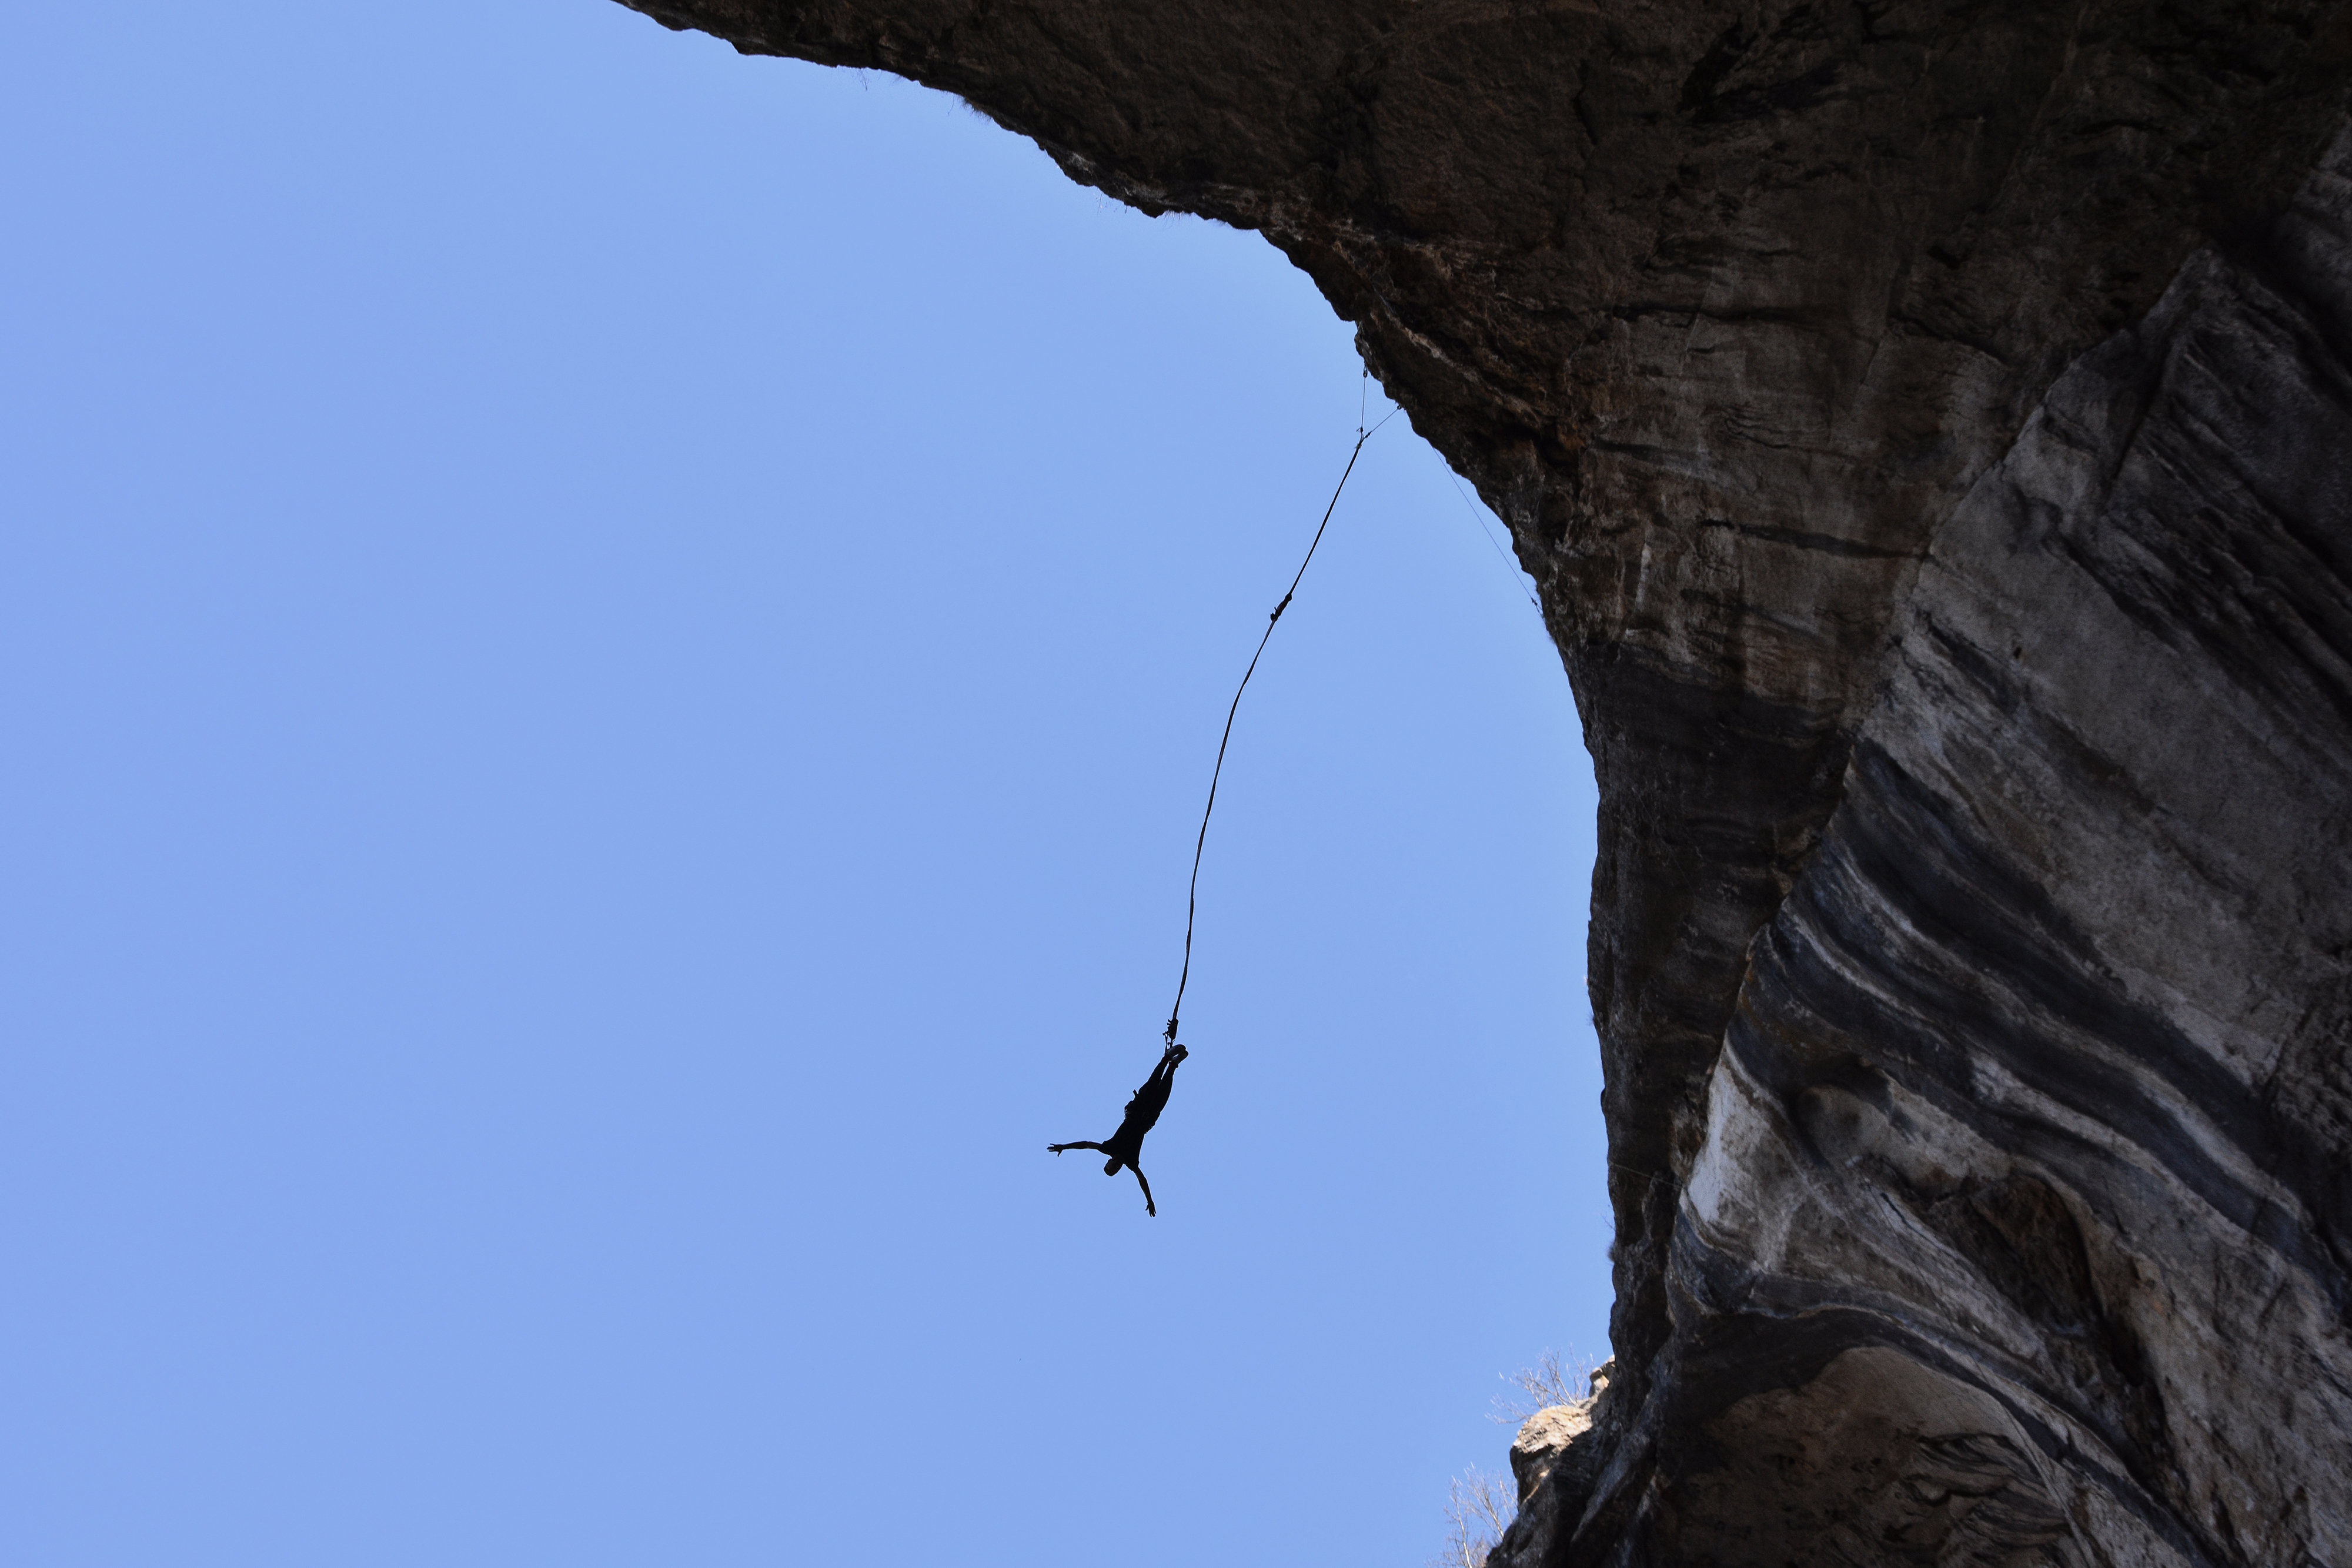 Bungee jump in Pohodna Cave, Bulgaria